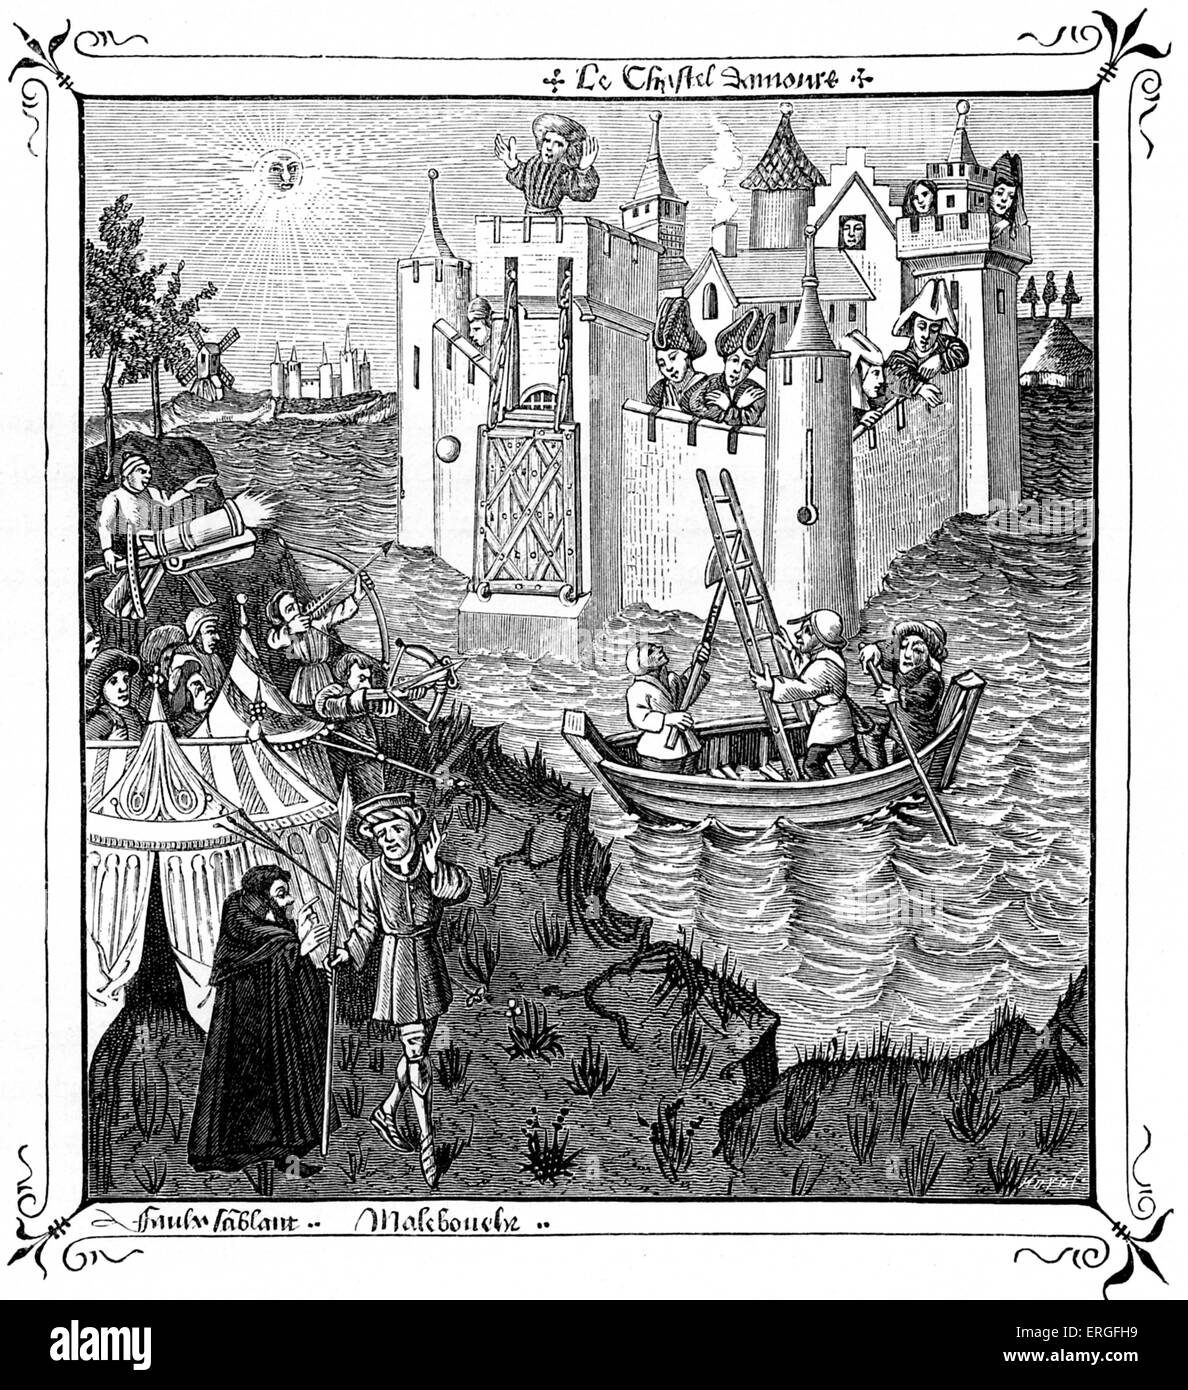 'The Castles of Loves' - from  miniature in 'Champion des Dames', 15th century manuscript. - Stock Image